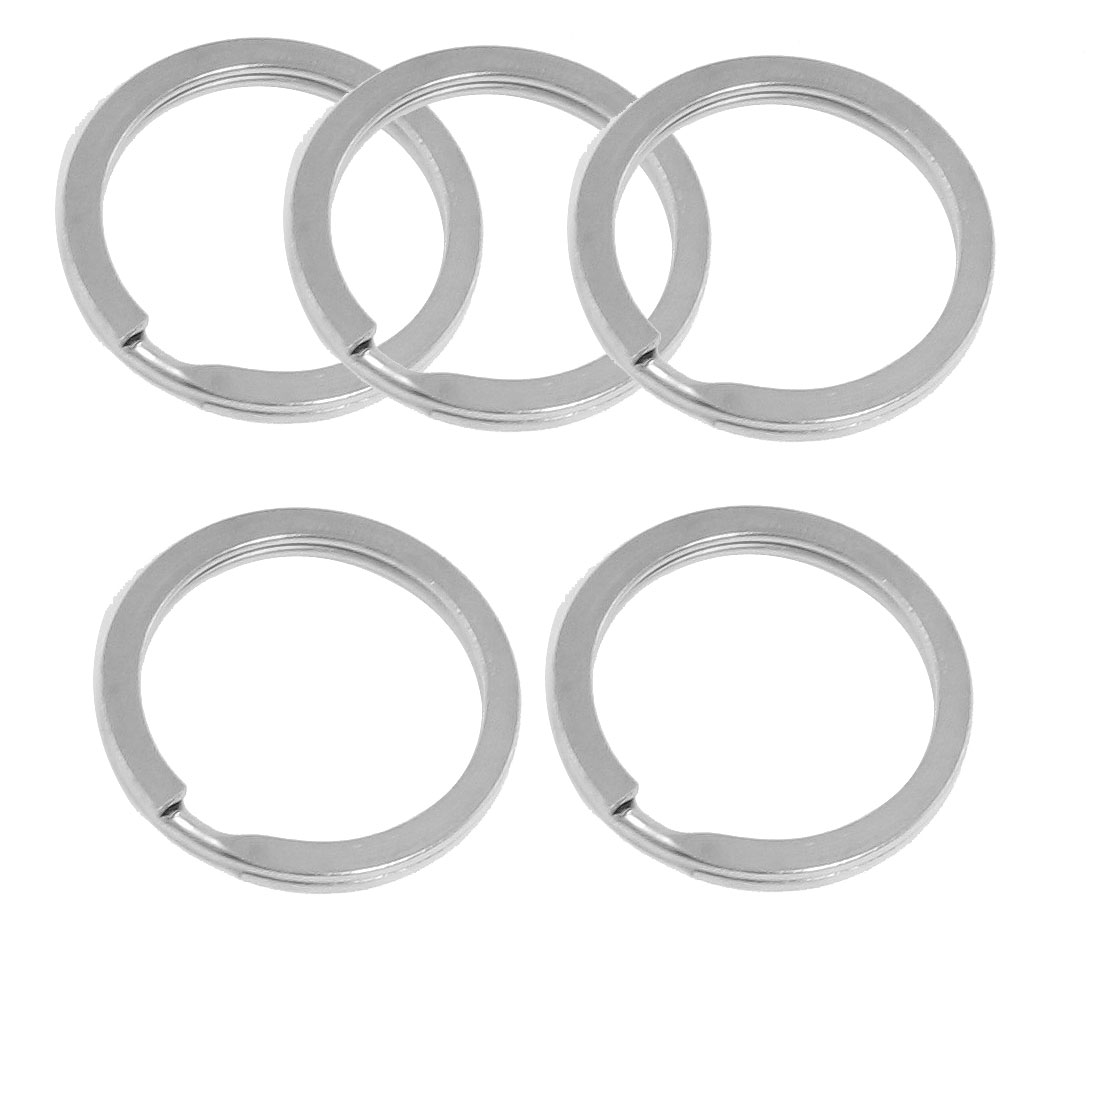 Key Ring Metal Round Hoop Flat Split Ring Keyring 30mm Dia Silver Tone 5 Pcs